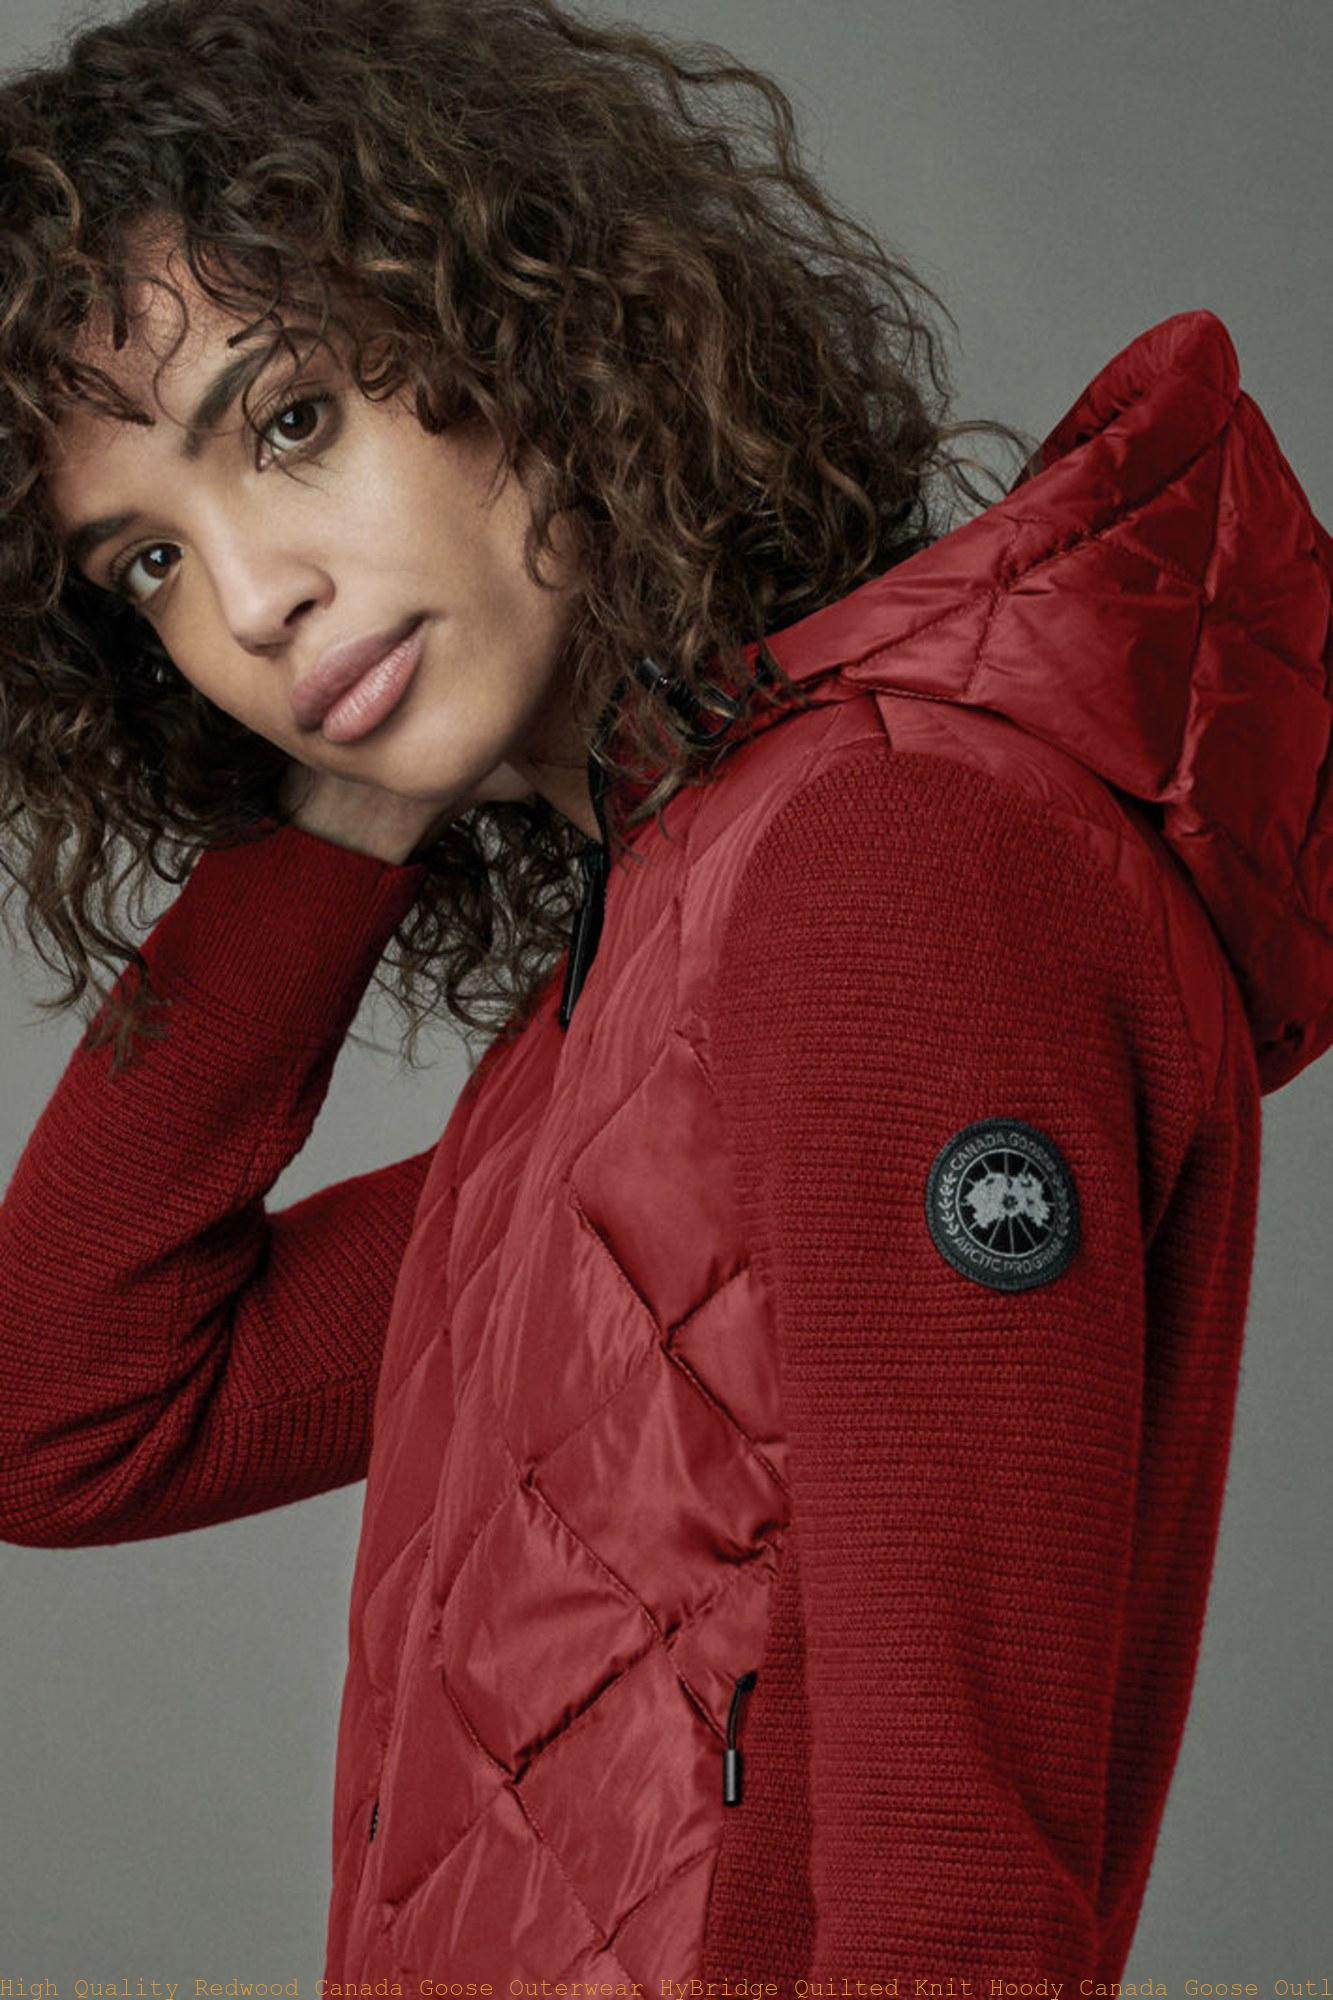 c0d5c4e7f06c High Quality Redwood Canada Goose Outerwear HyBridge Quilted Knit Hoody Canada  Goose Outlet New York City 6900L